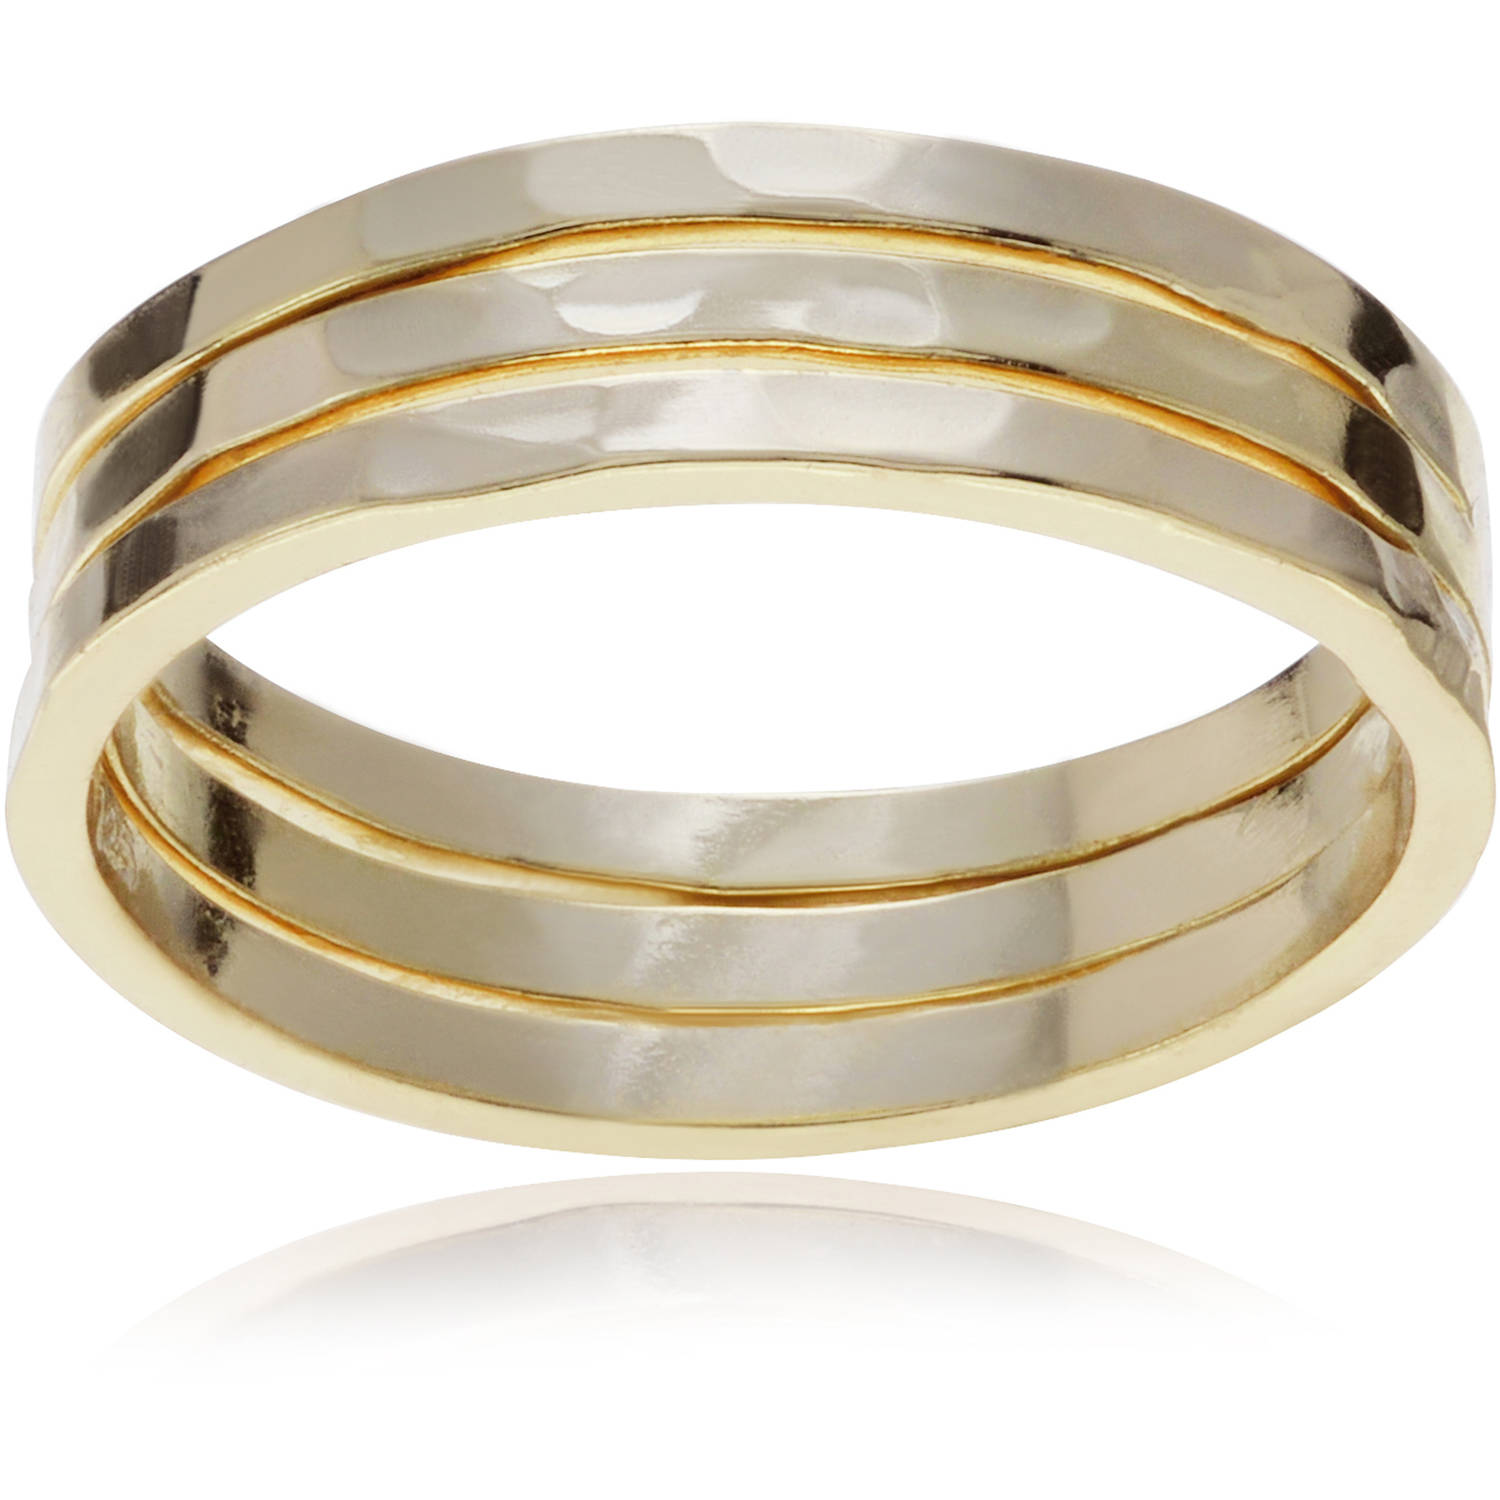 Brinley Co. Women's Sterling Silver Trio Hammered Fashion Ring Set, 3 Rings, Gold